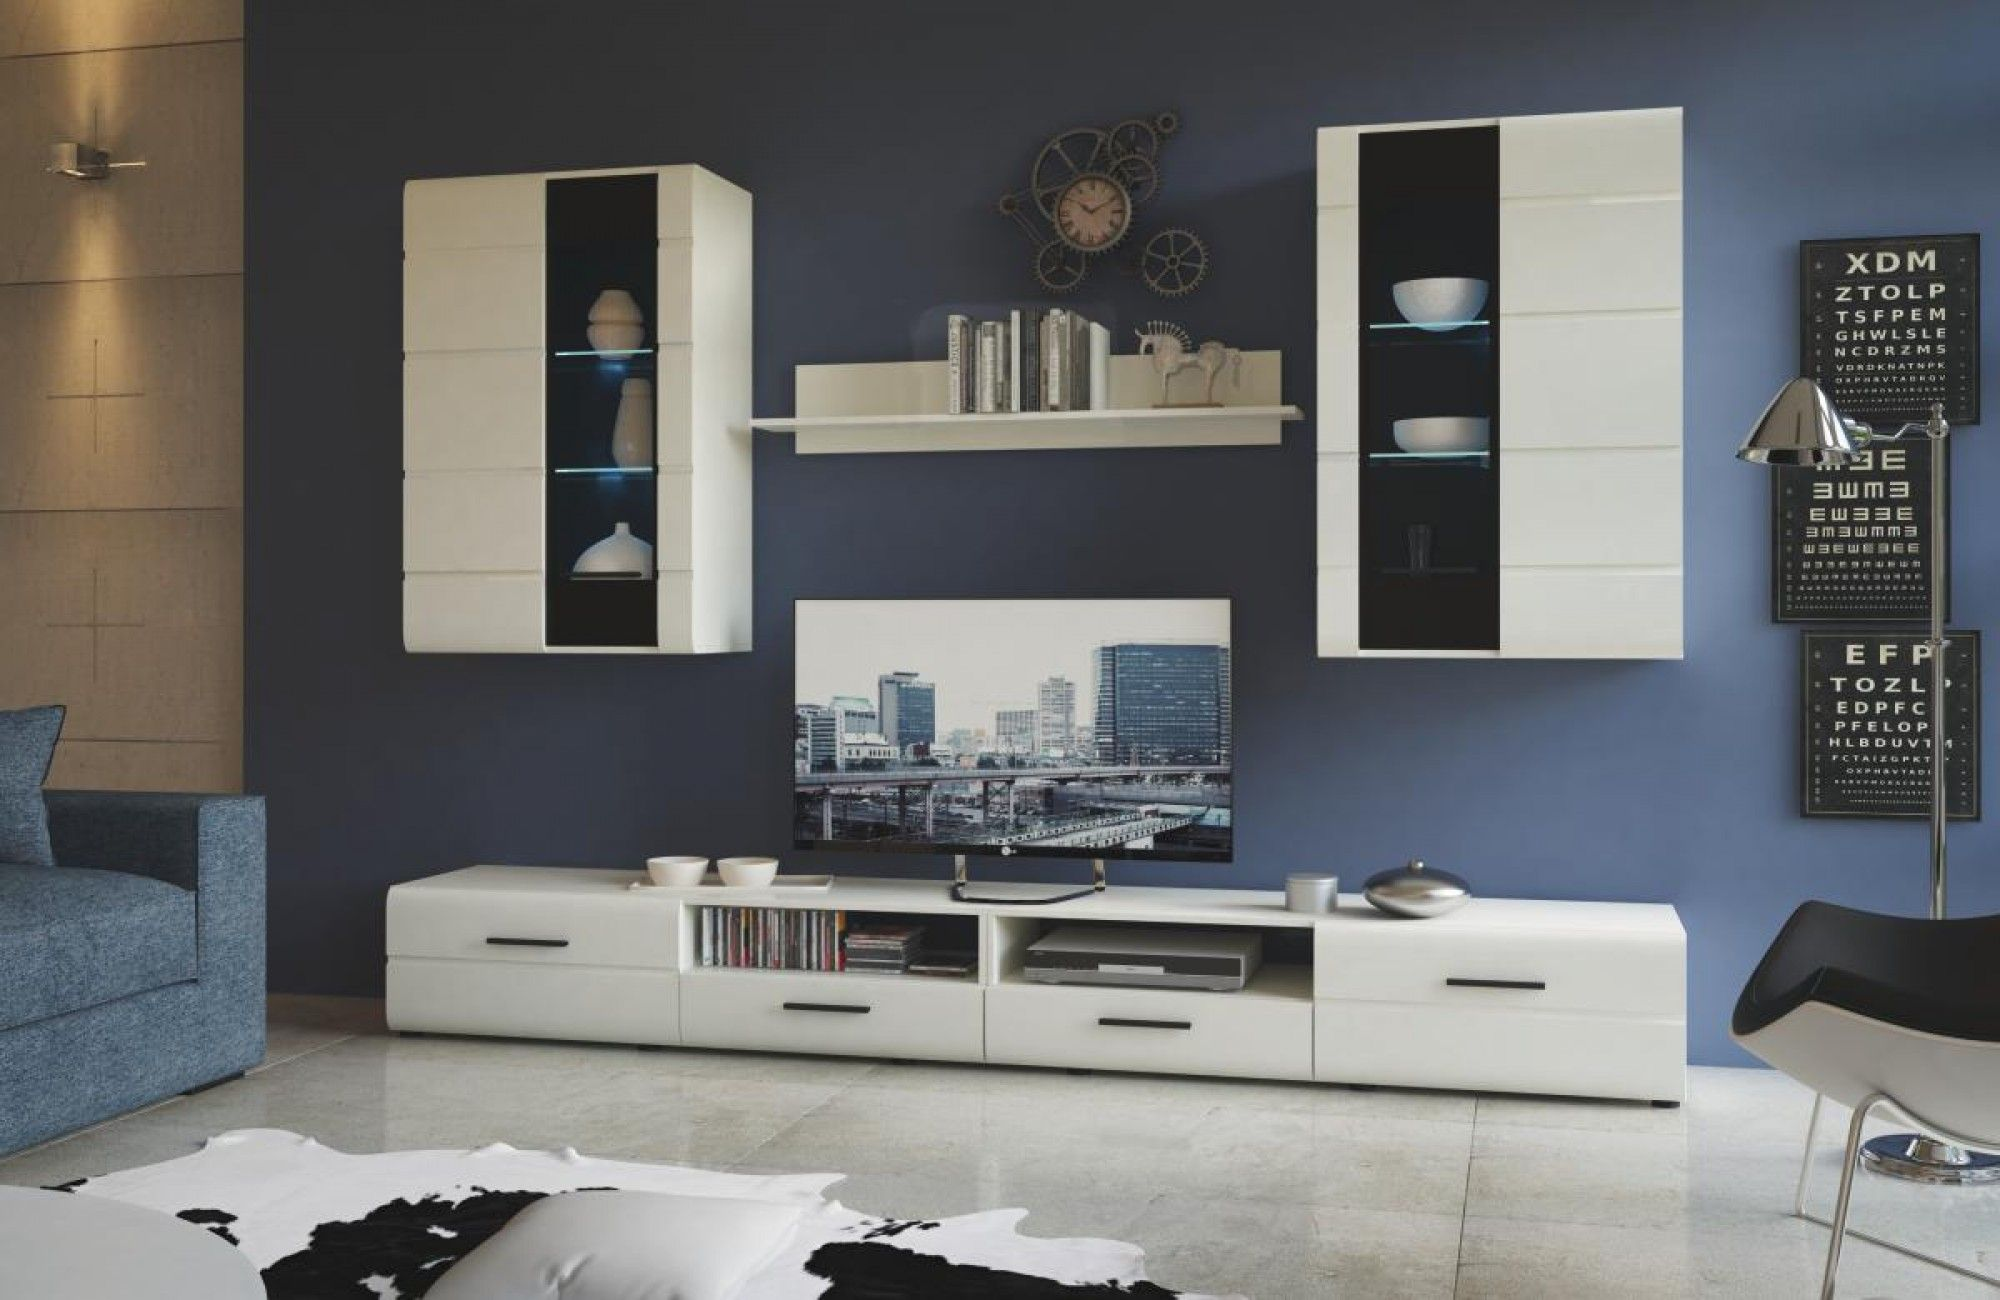 wohnwand hochglanz gnstig affordable otto schrankwand wohnwand tlg online kaufen otto wei. Black Bedroom Furniture Sets. Home Design Ideas